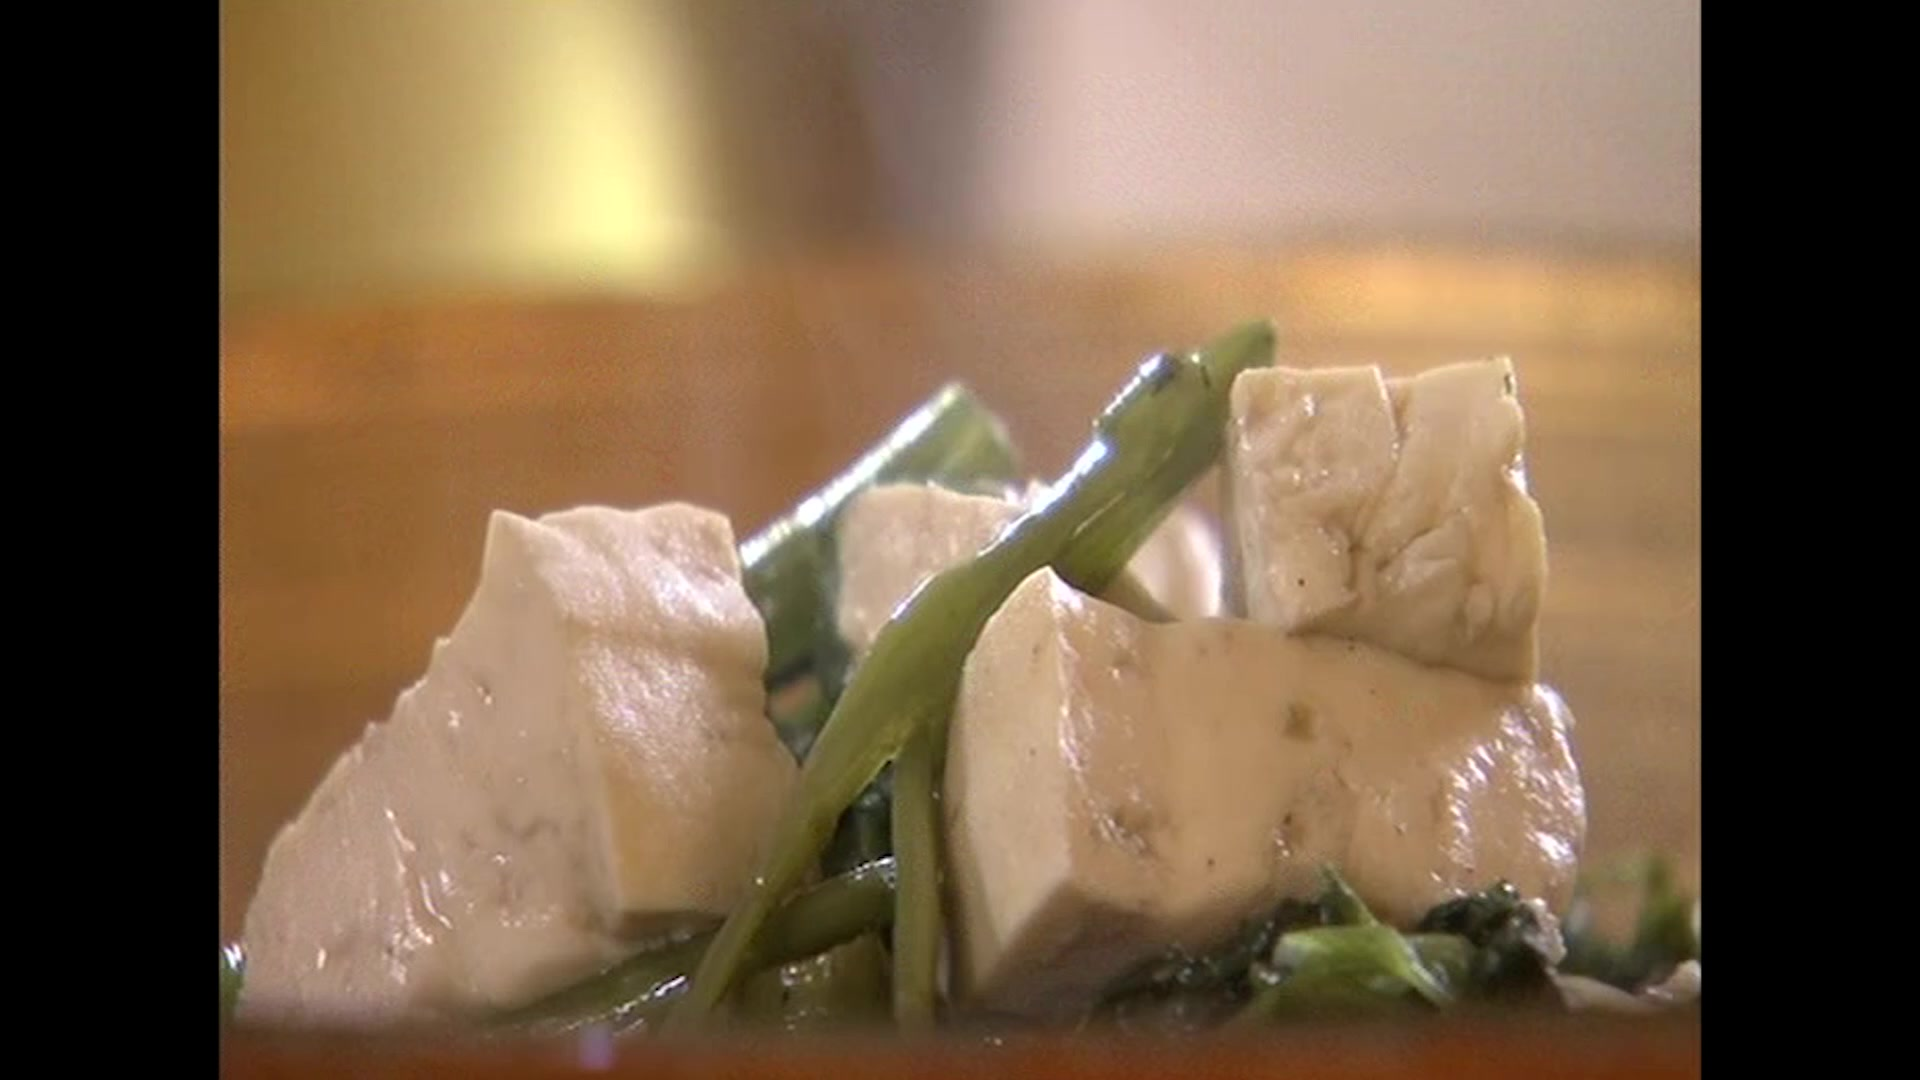 How to Make Stir-Fried Morning Glory With Silky Tofu By Gok Wan